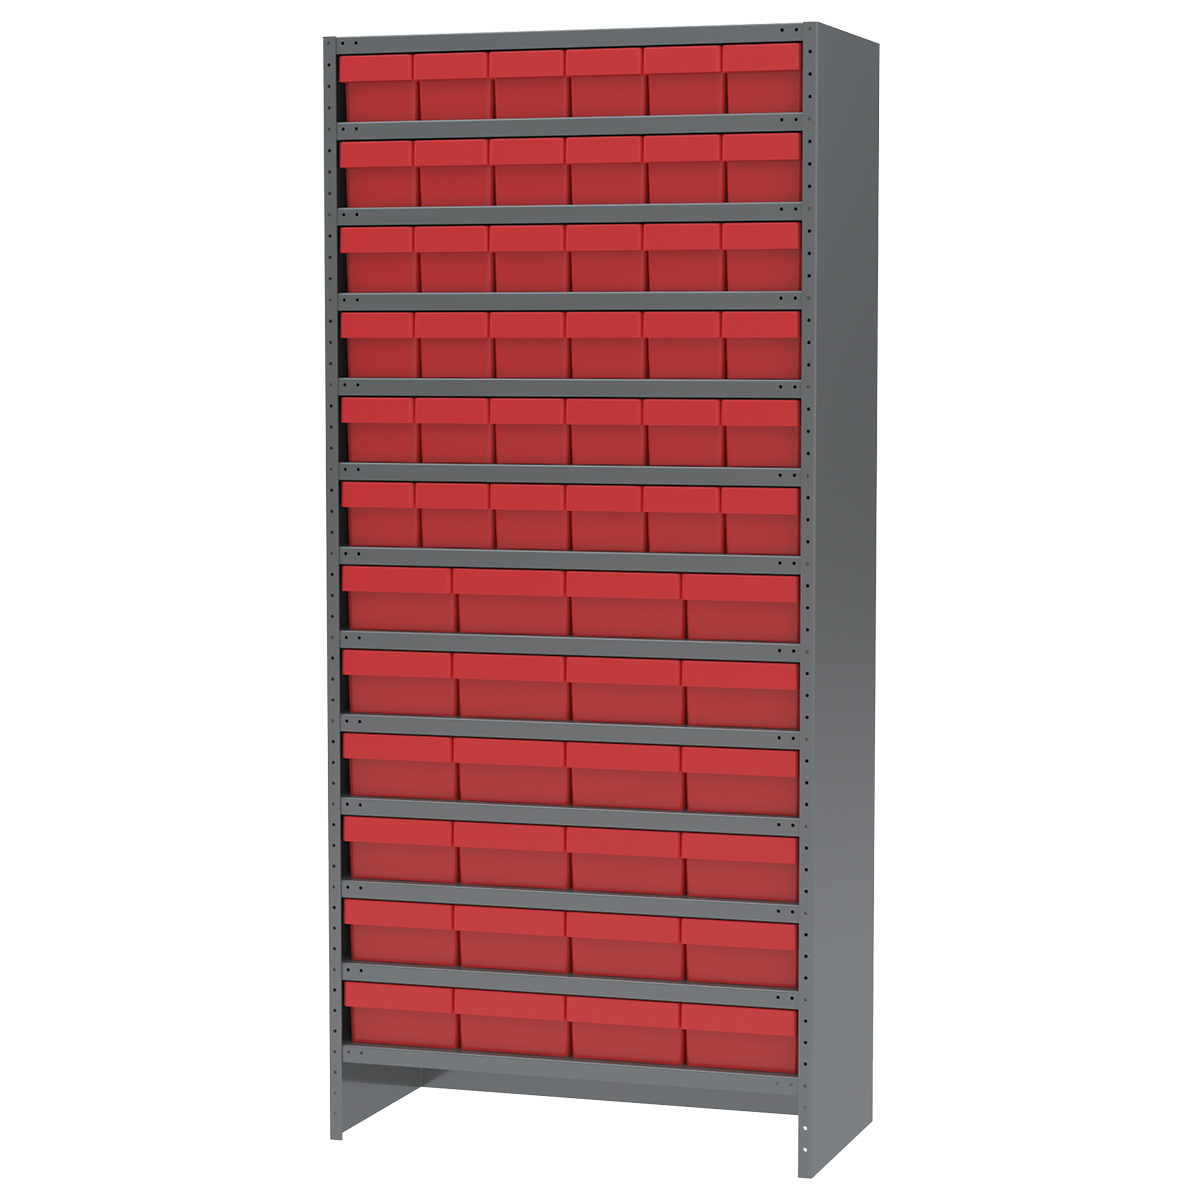 Enclosed Steel Shelving Kit, 18x36x79, 60 AkroDrawers, Gray/Red.  This item sold in carton quantities of 1.